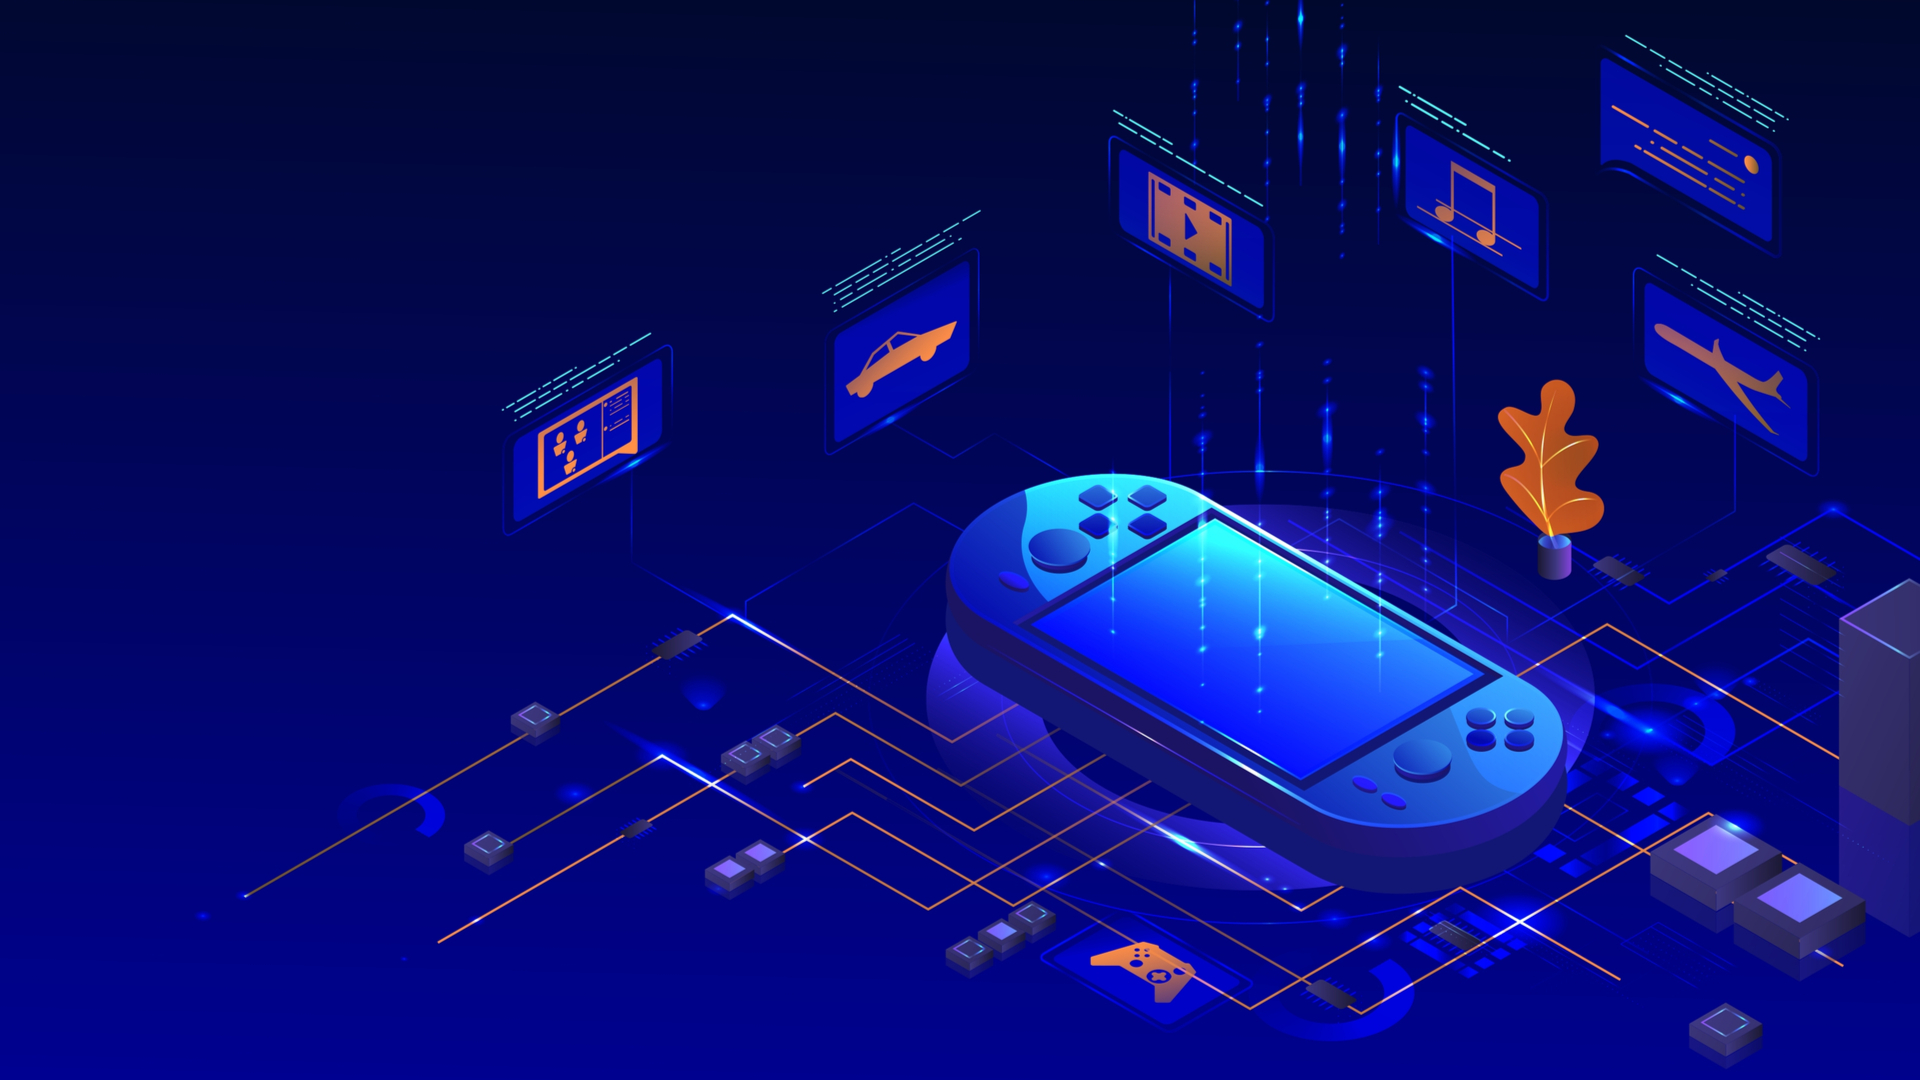 vector isometric illustration of a handheld gaming console